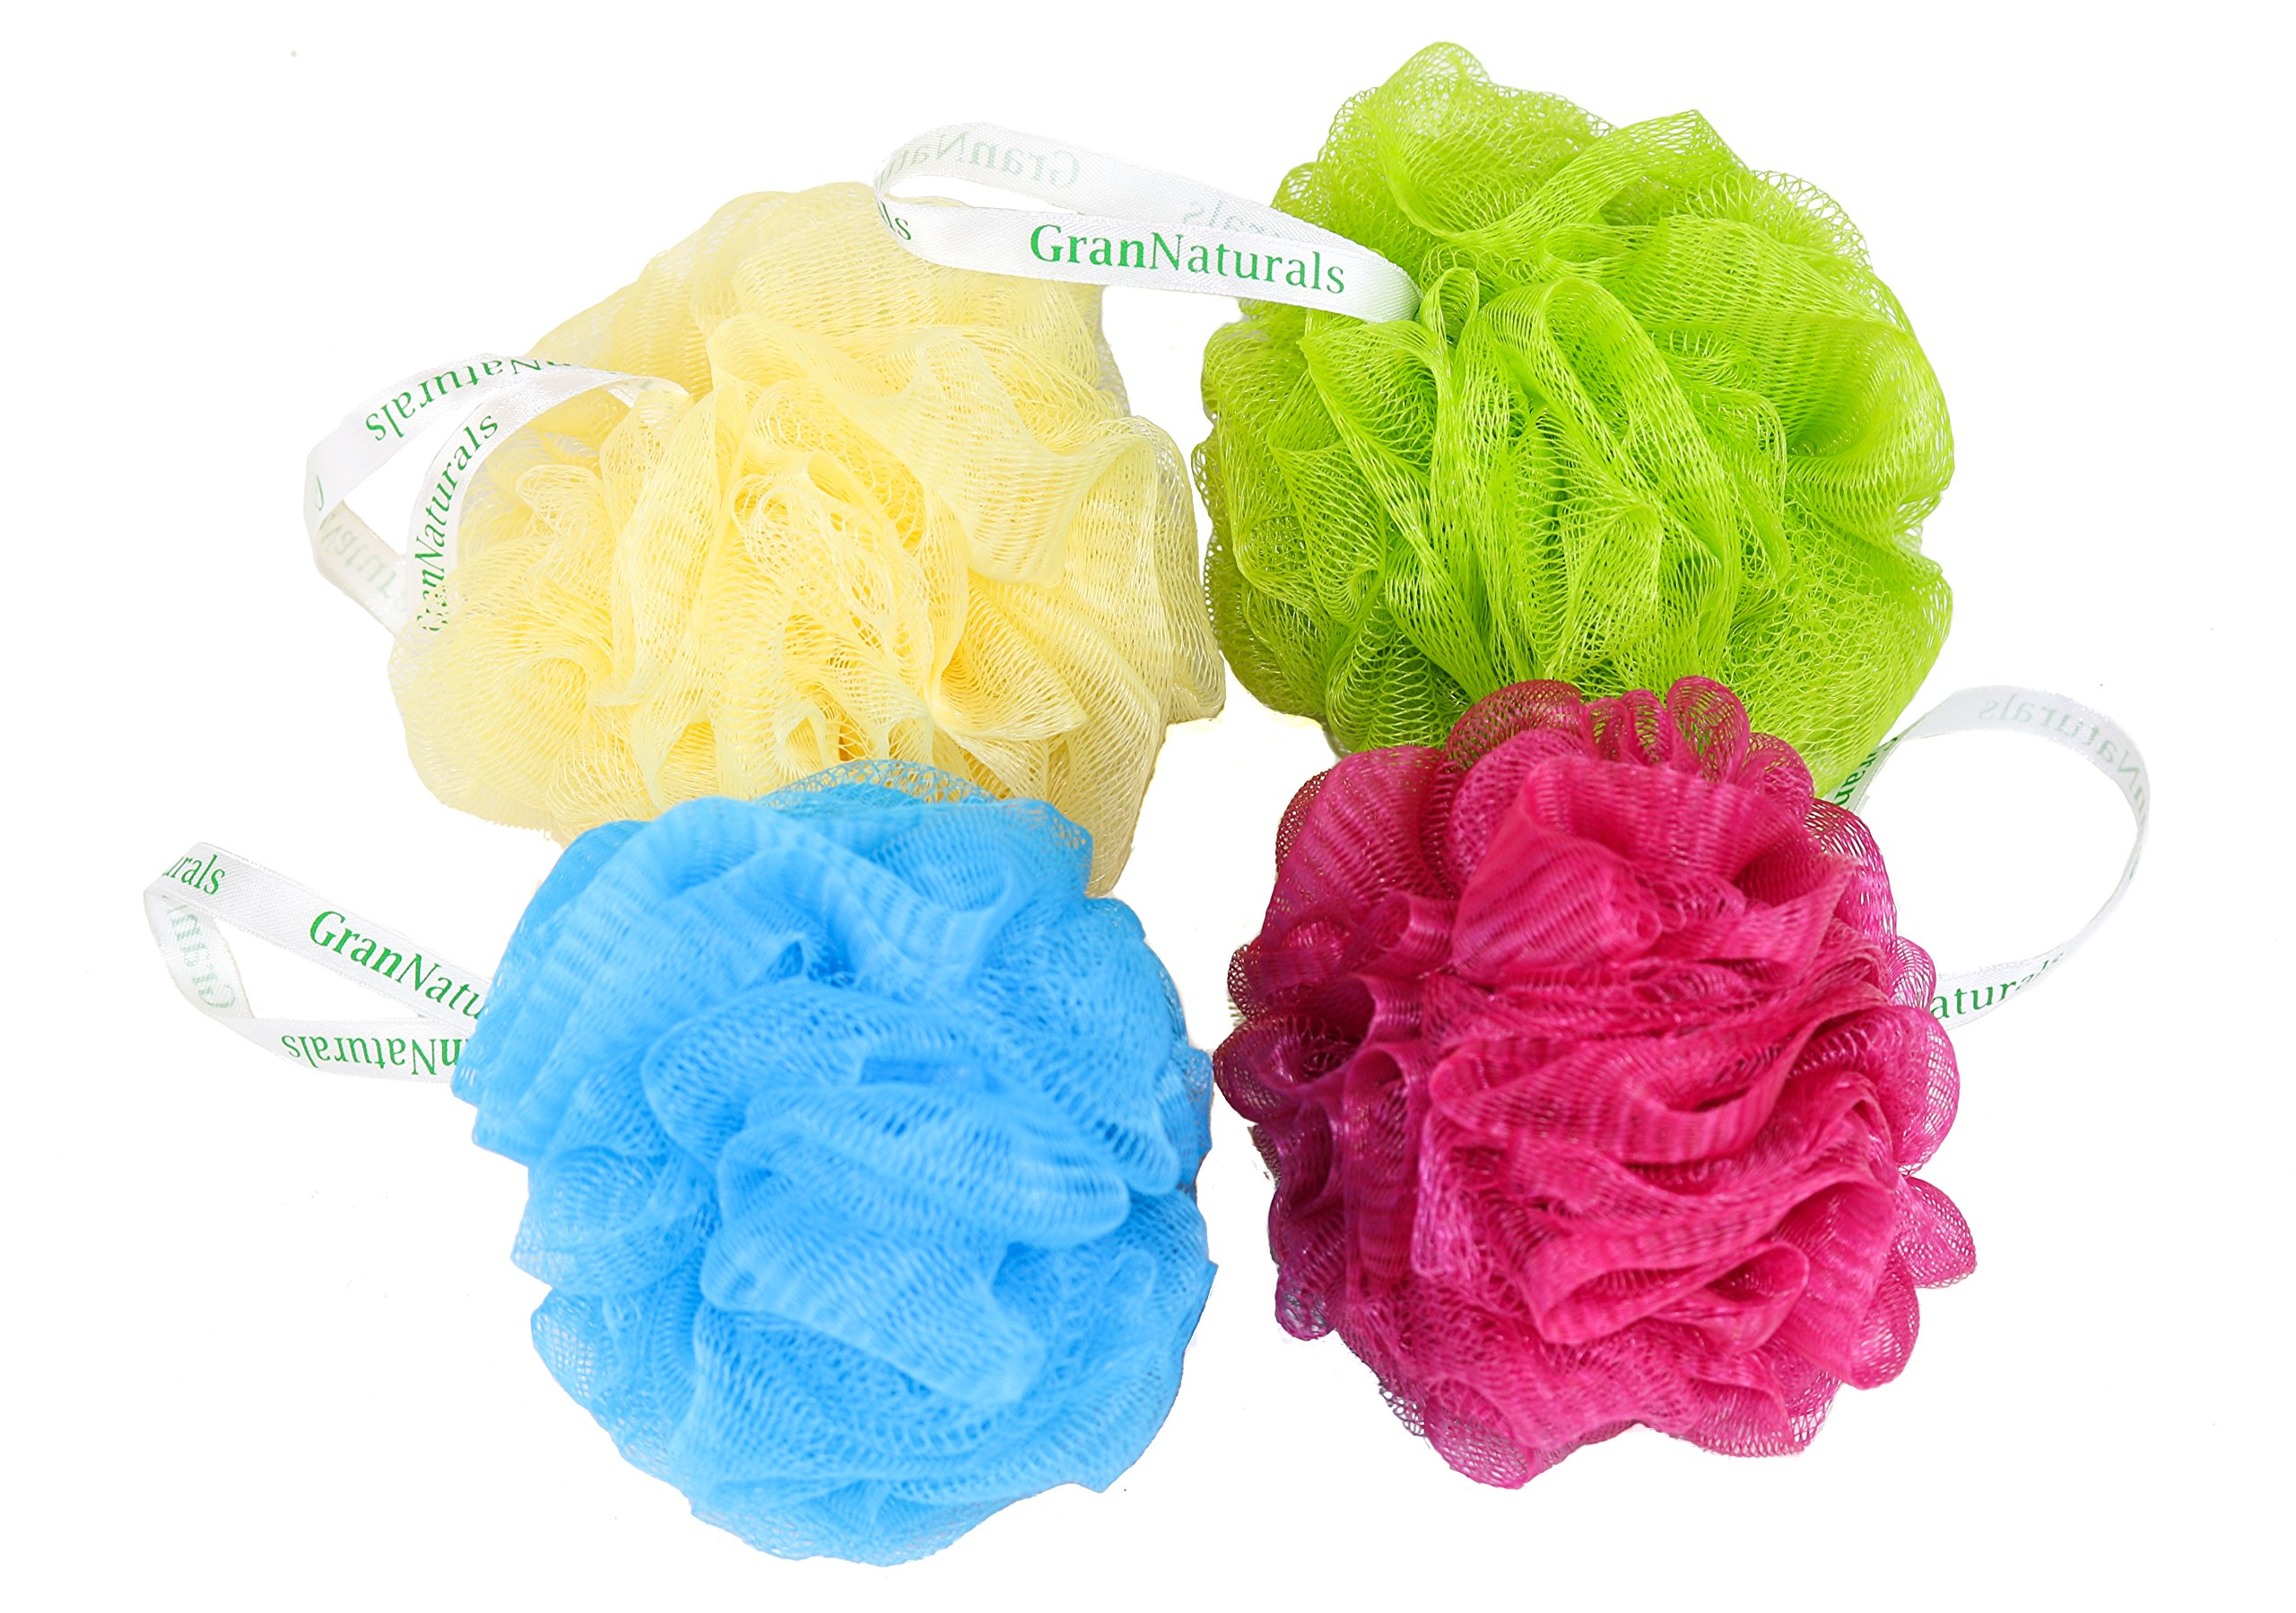 Bath & Shower Mesh Pouf Sponge Loofah - 4 Color Pack Set - Scrubber works with Body Wash, Shower Gel, and Lotion - For Men, Women, and Kids - Poufs Scrub with Exfoliating Texture